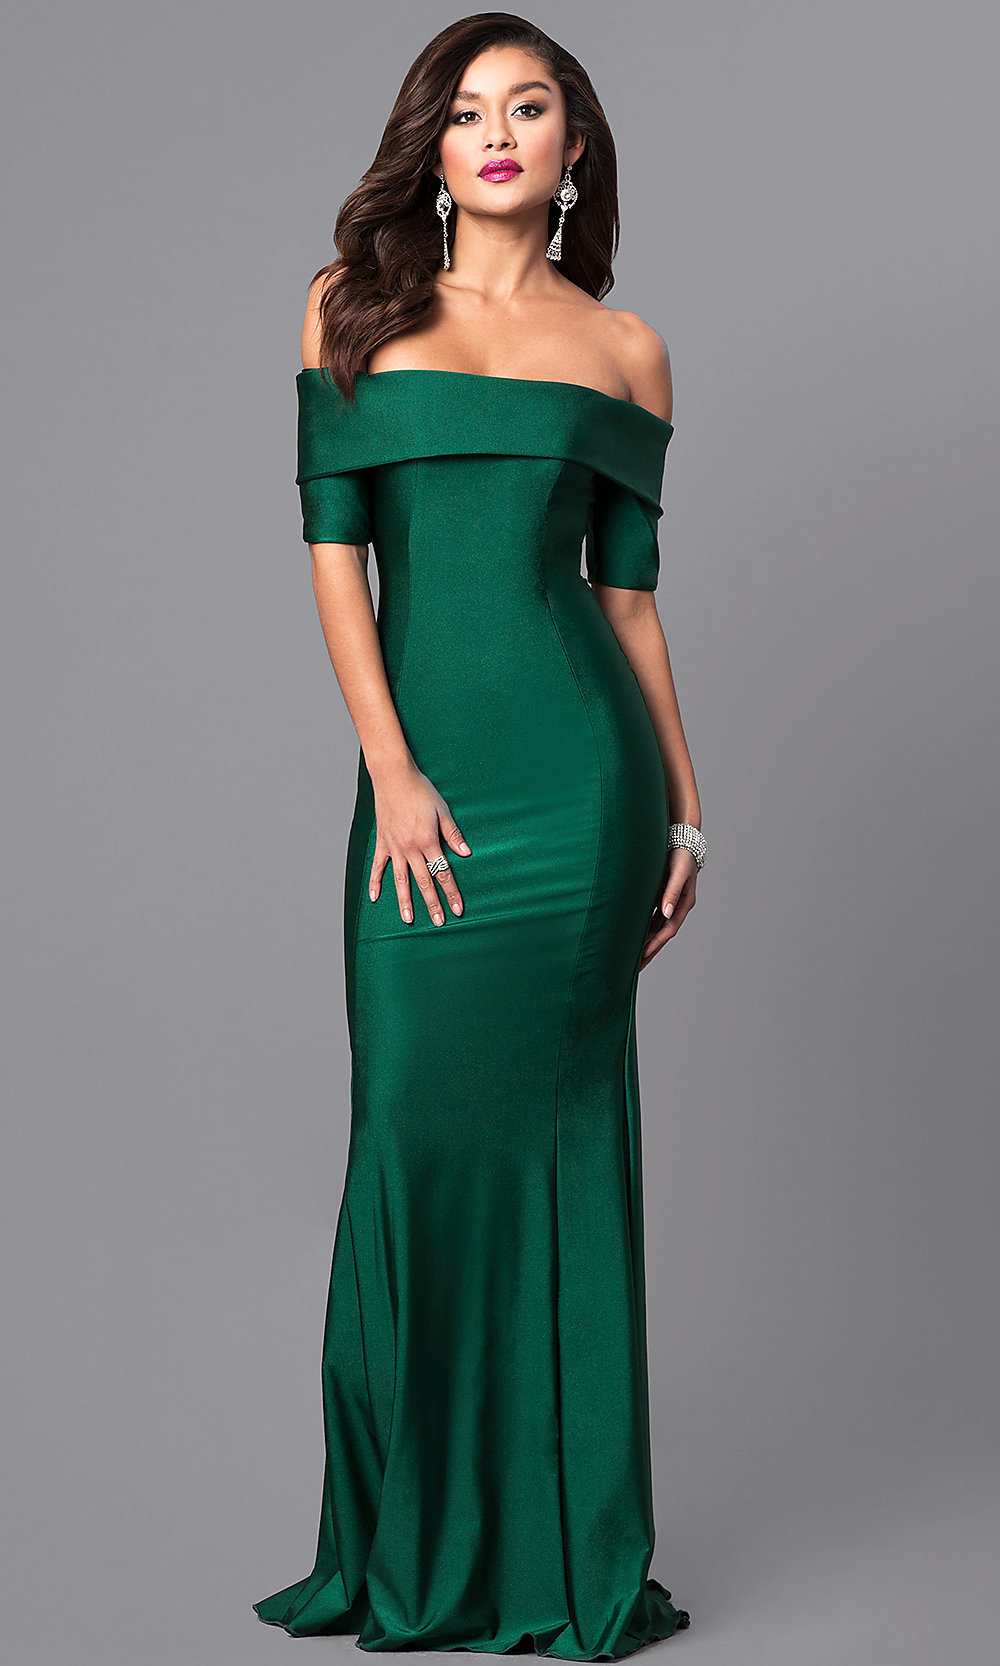 Off-the-Shoulder Long Prom Dress with Sleeves